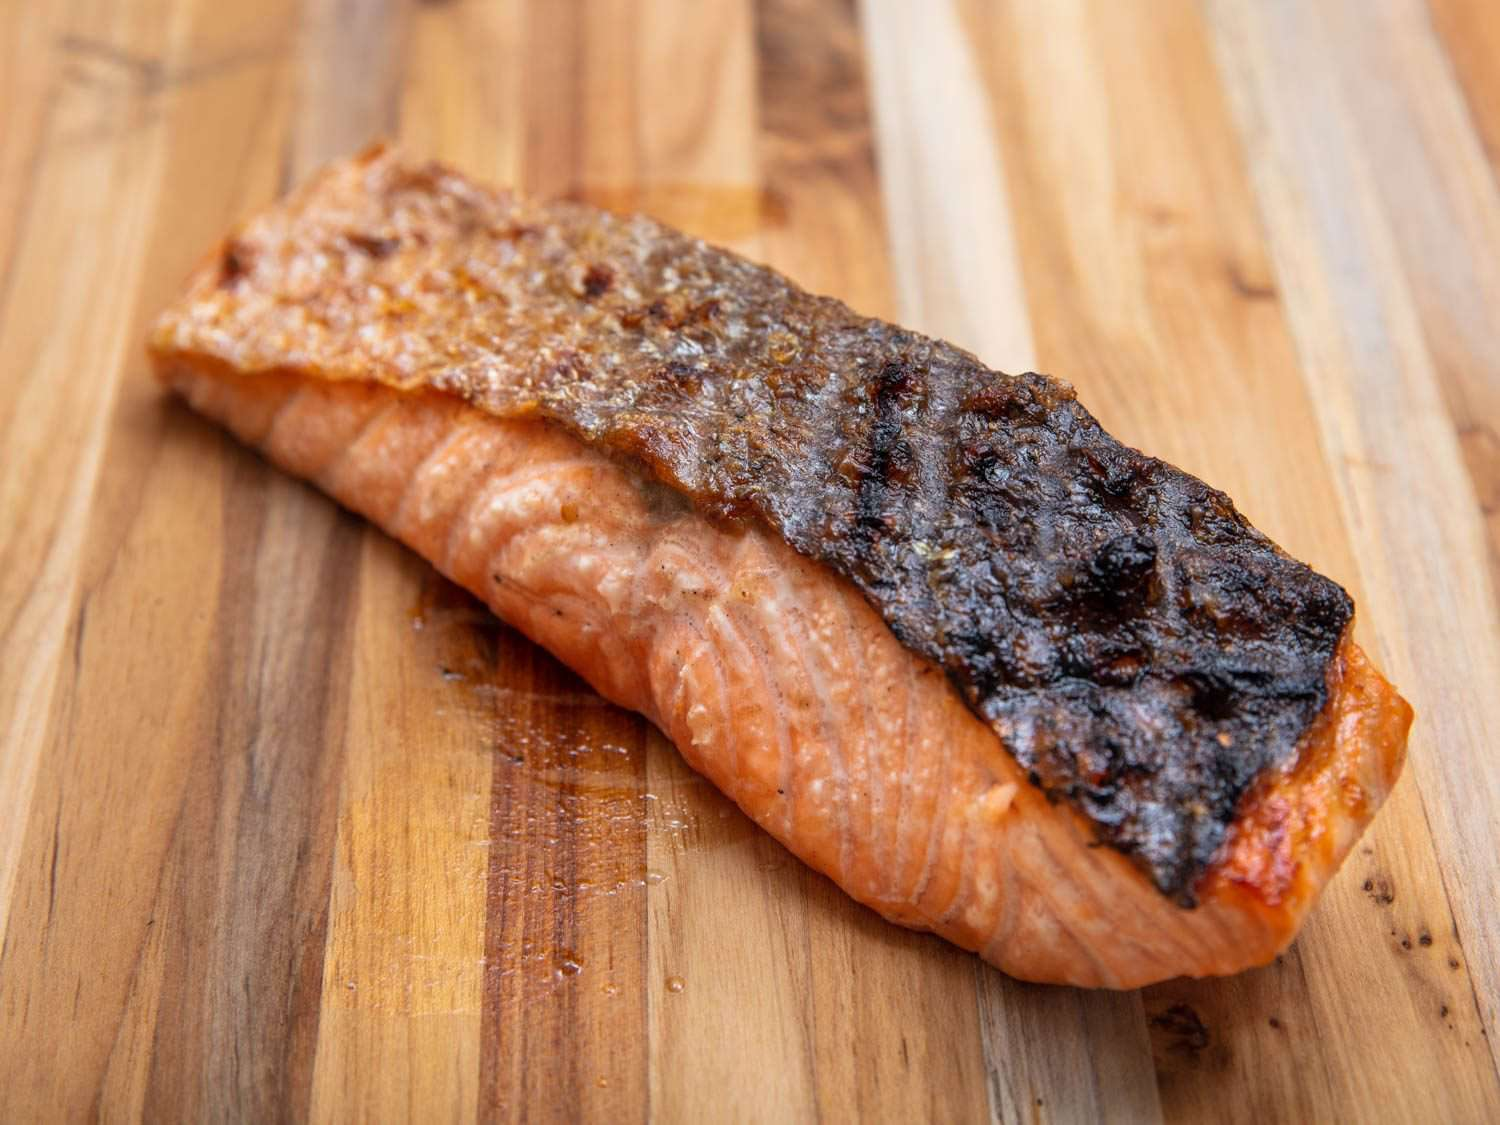 A finished grilled salmon filet on a cutting board, with the skin side up, showing the skin nicely browned and crispy and the fish cooked through